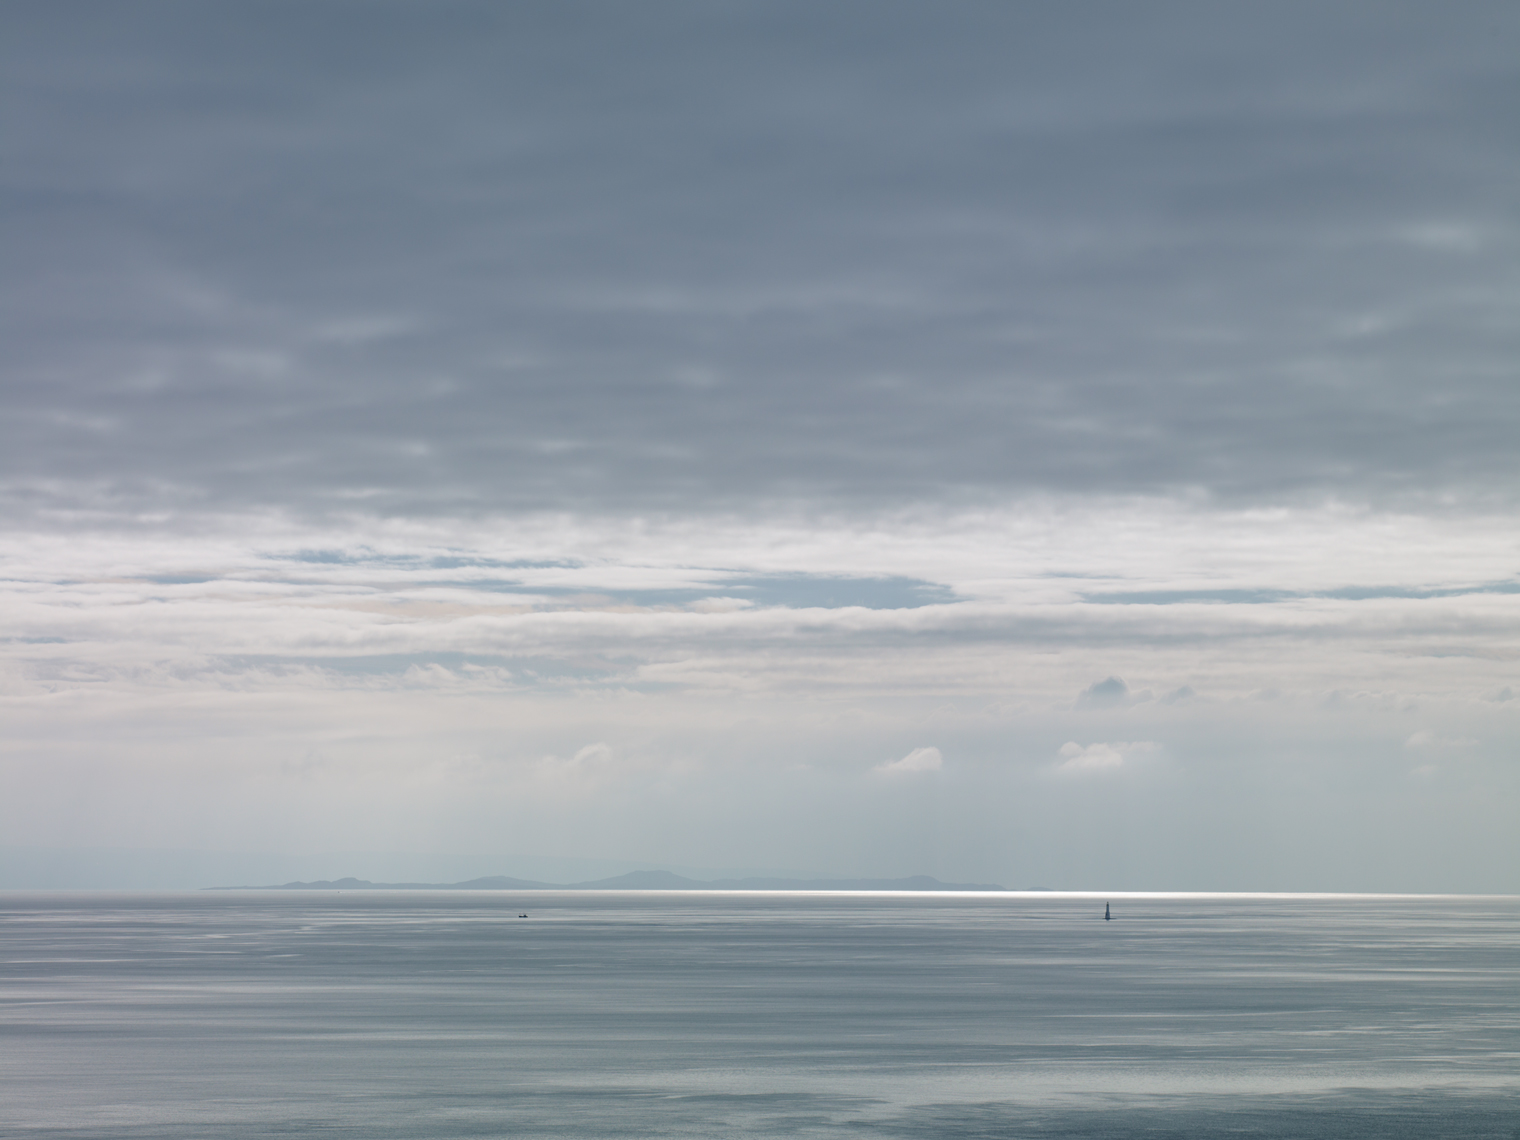 Jon Wyatt Photography - Sound of Jura VII - seascape of the Sound of Jura looking towards the Scottish mainland